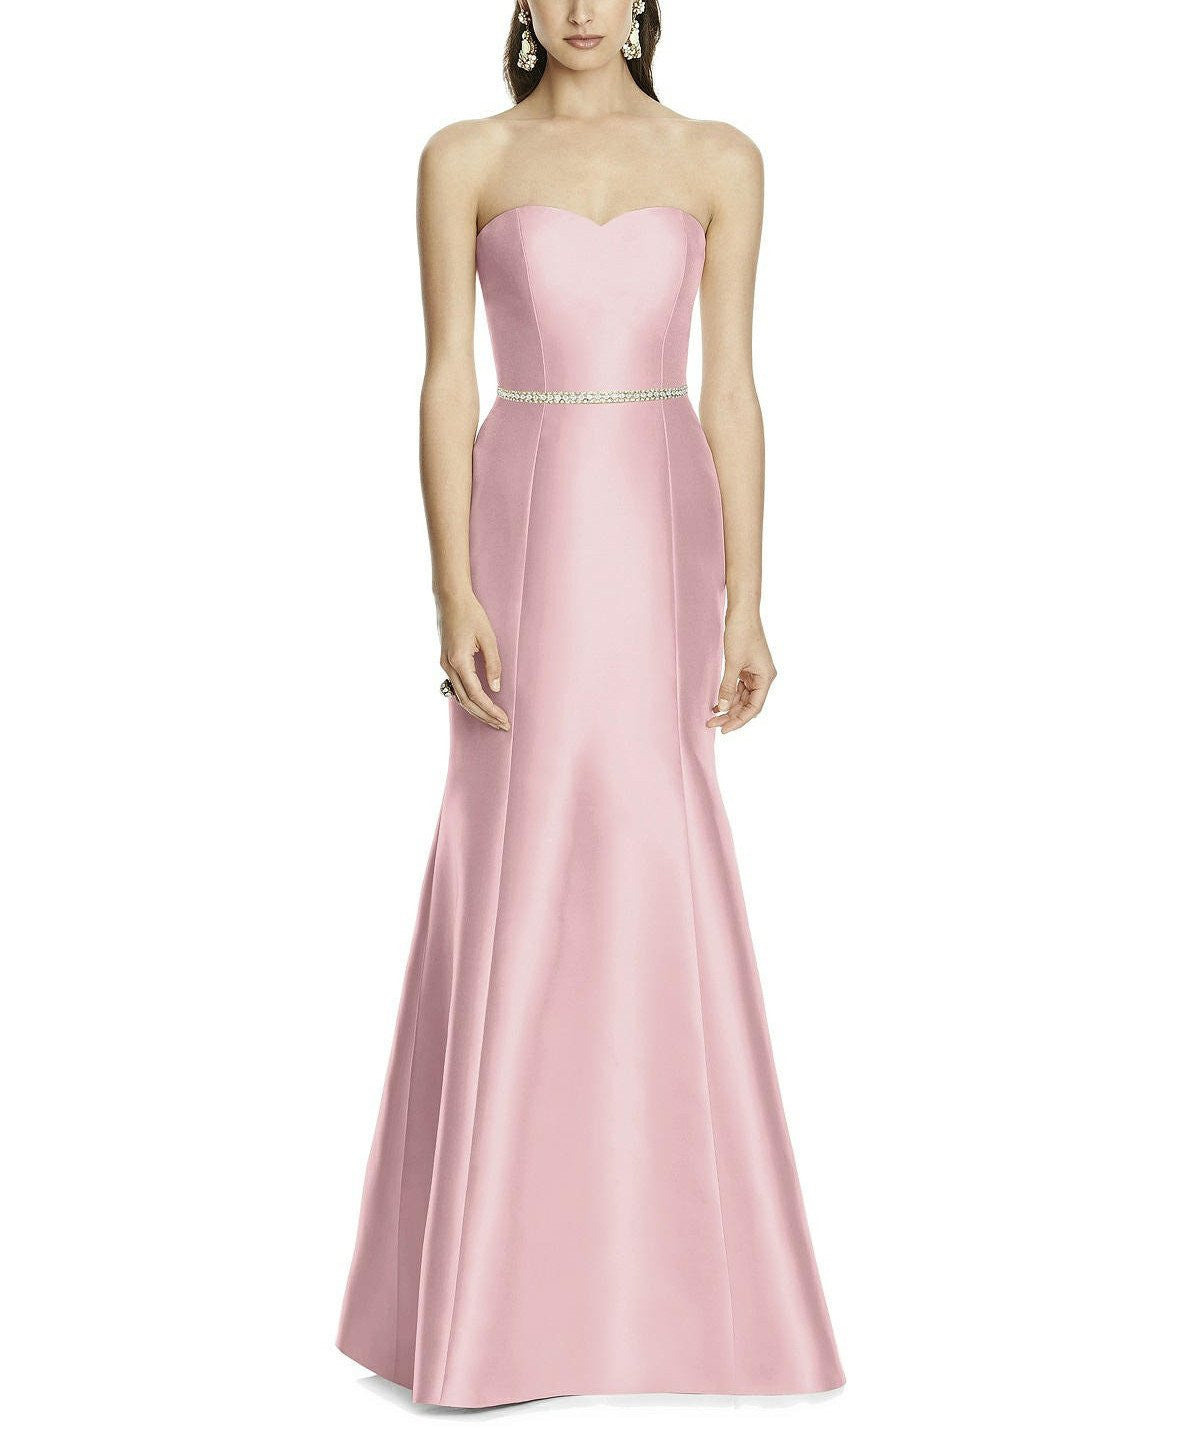 Alfred sung style d742 quickship bridesmaid dress brideside alfred sung style d742 quickship ombrellifo Gallery